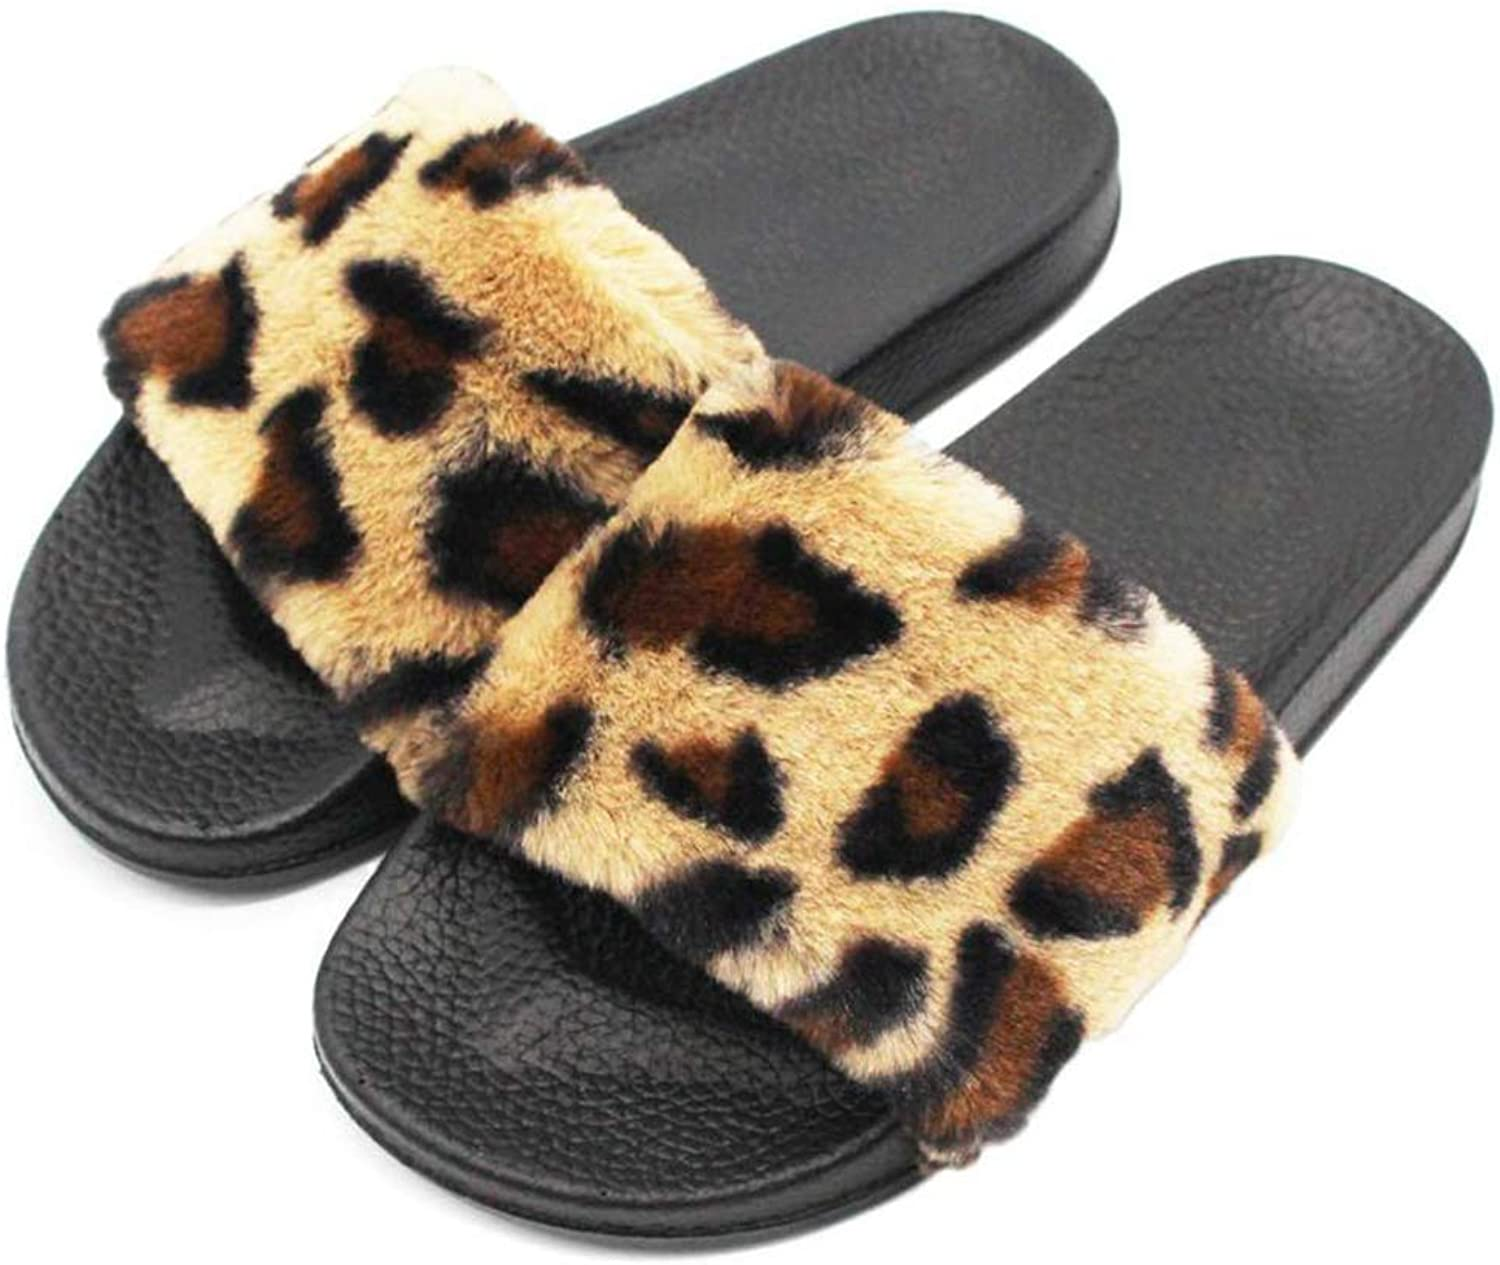 Nafanio Autumn Women Slippers Leopard Fluffy Faux Fur Flat Slip On Indoor Outdoor Home Winter Warm shoes Sandals